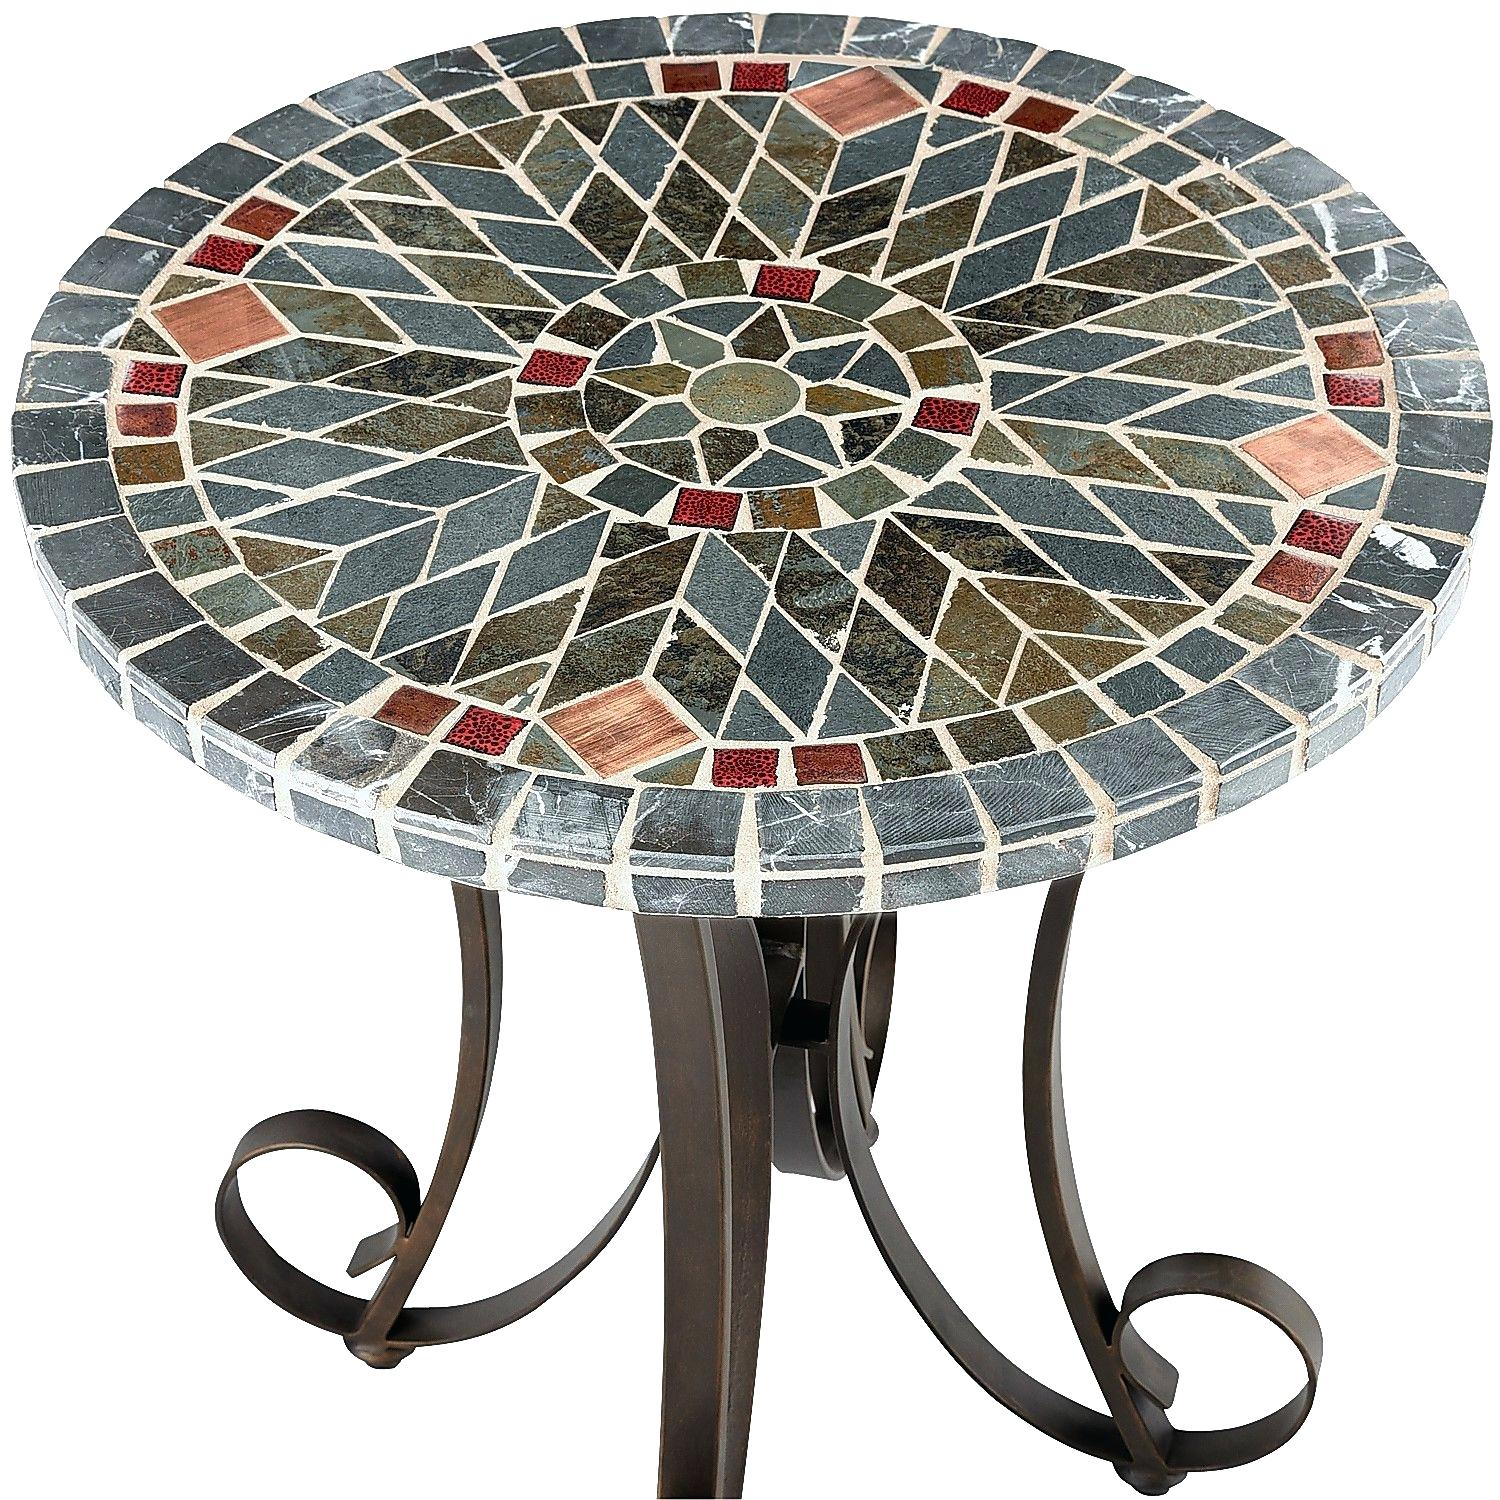 round mirror accent table pier tables mosaic lavorochogan info kenzie small one decoration pieces for drawing room inexpensive sofas rugs clearance west elm buffet light blue